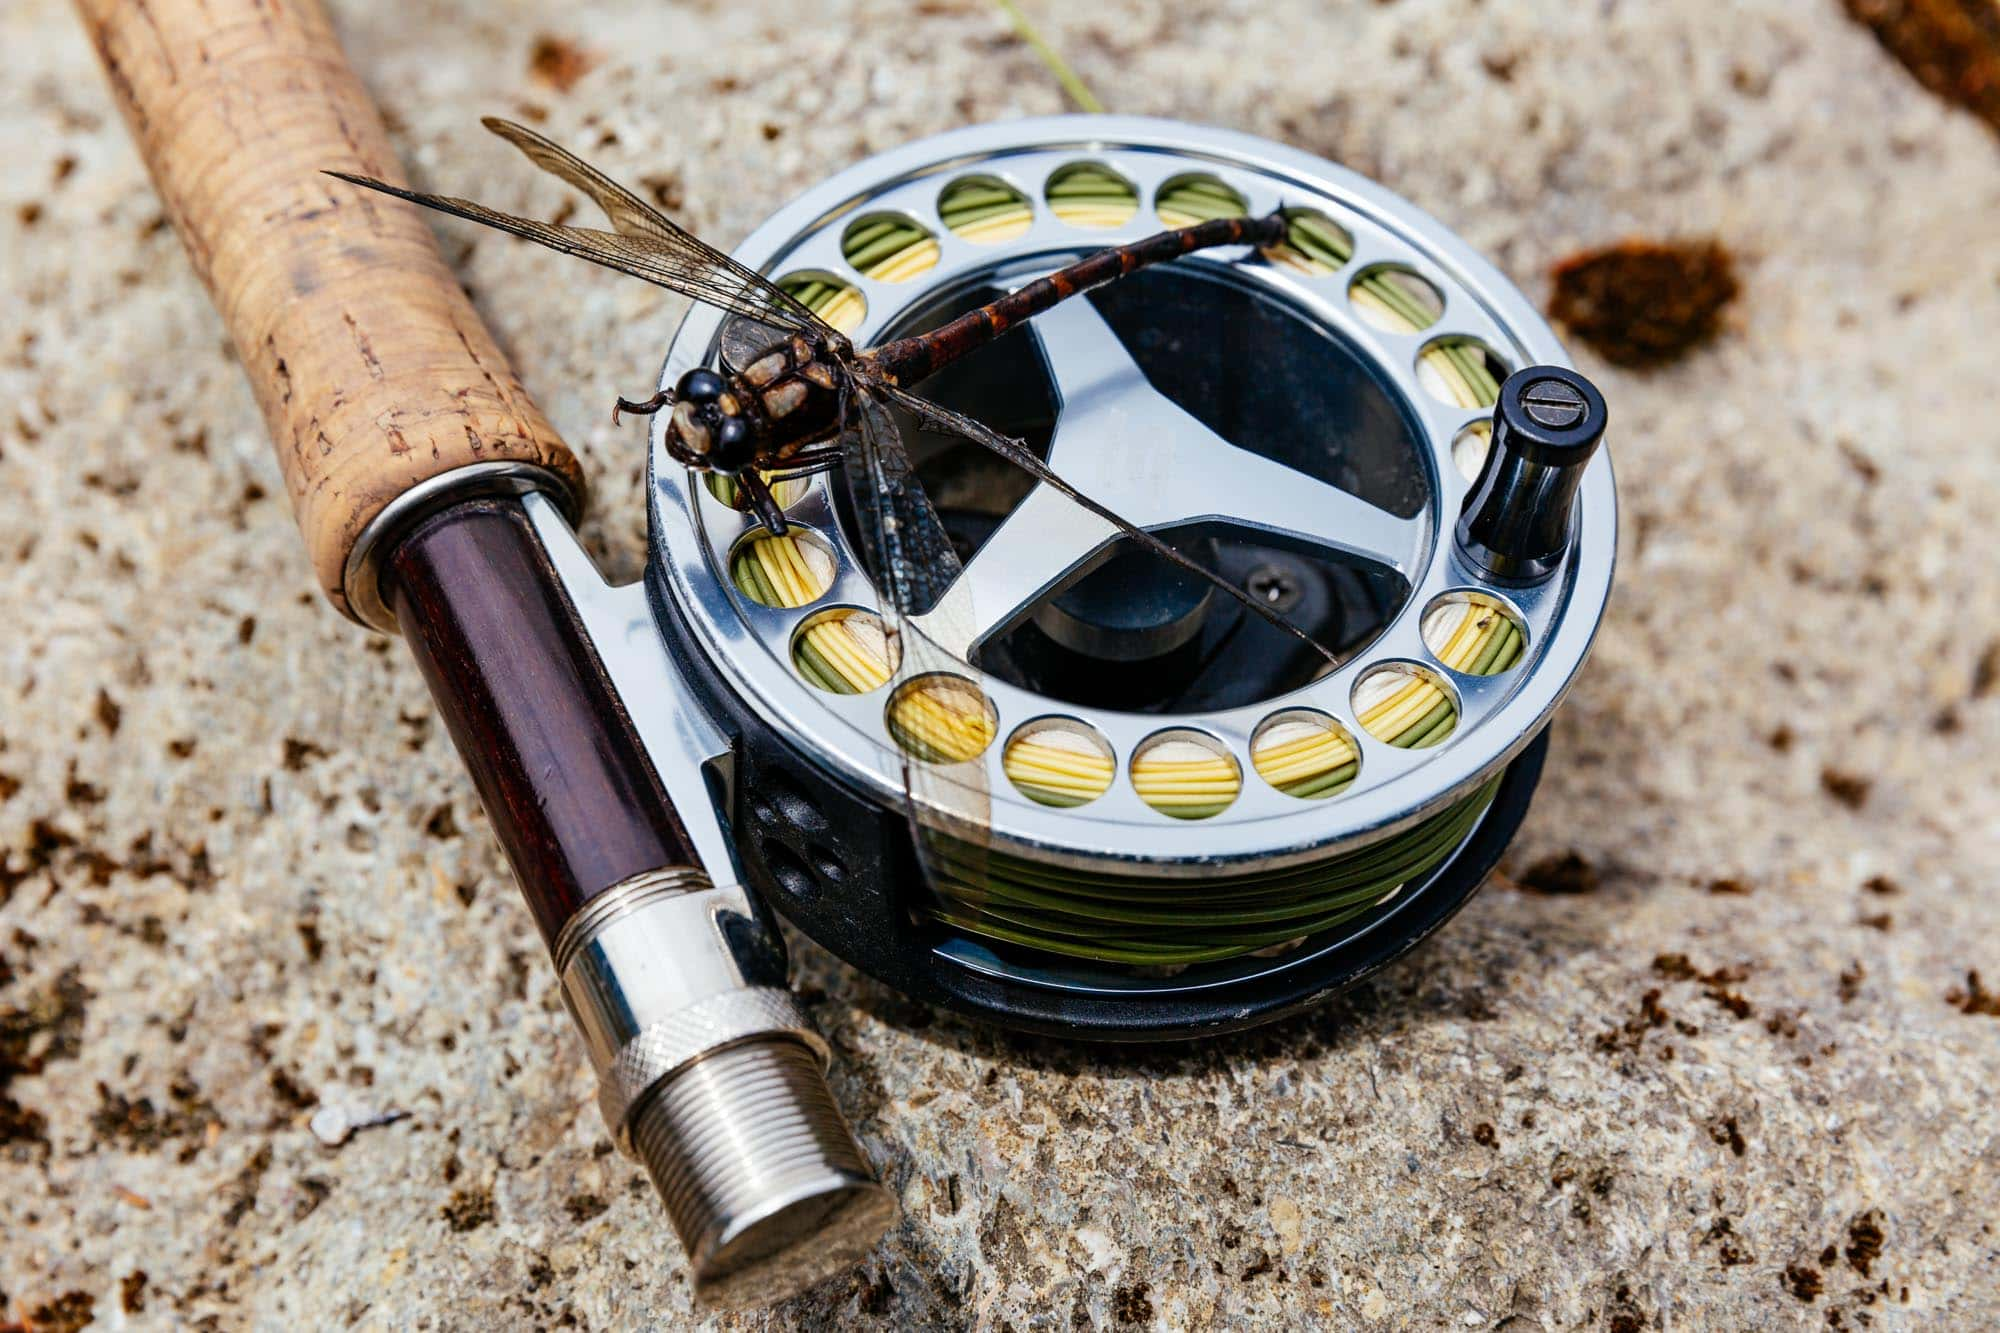 Types of fishing Reels and where they are best used